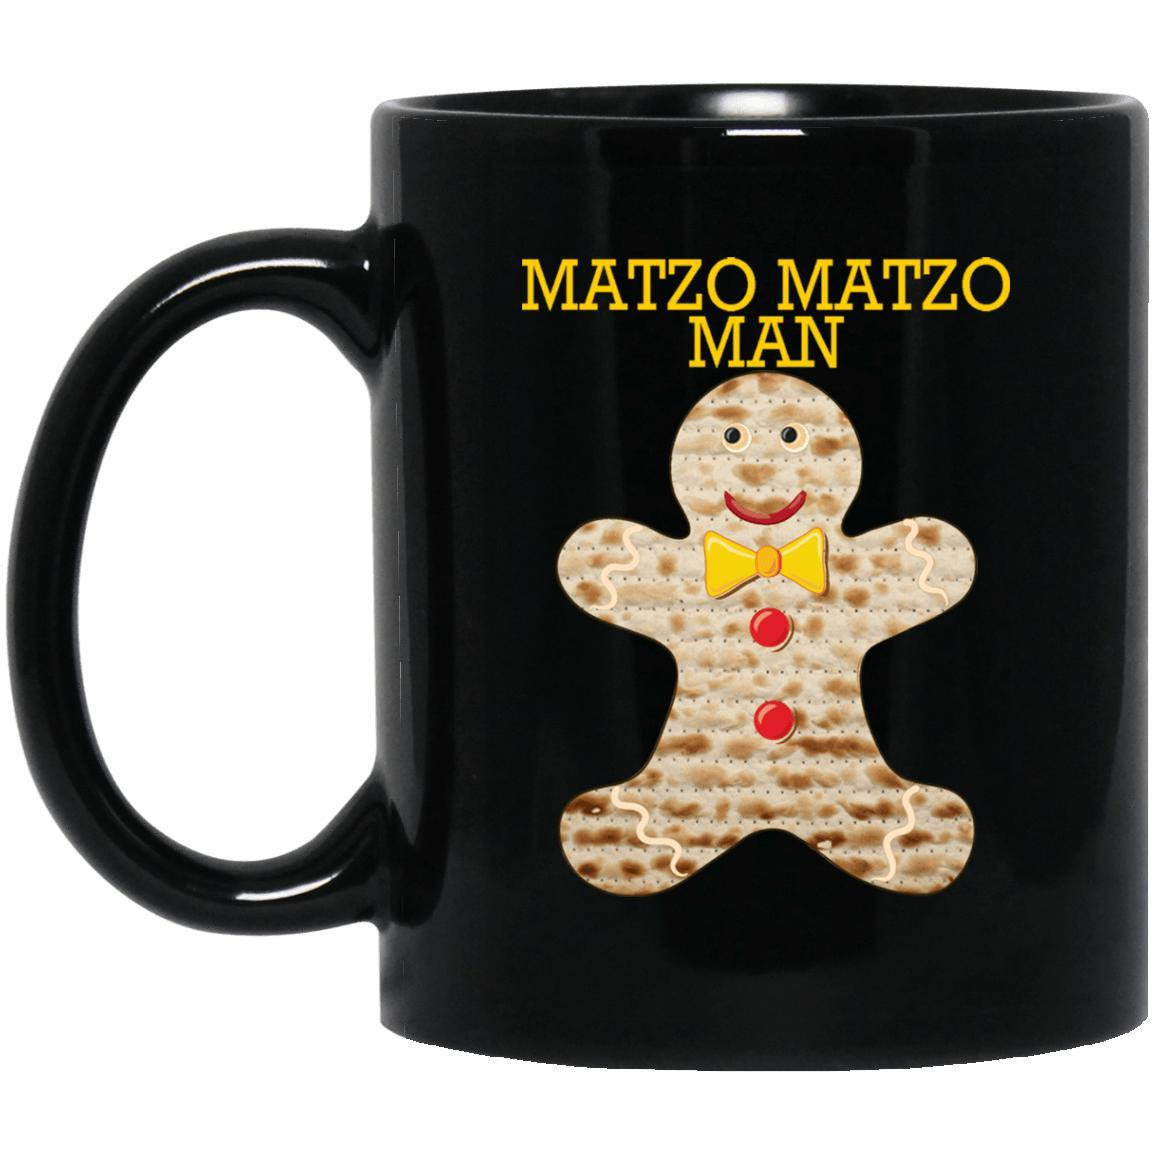 Matzo Man Mugs